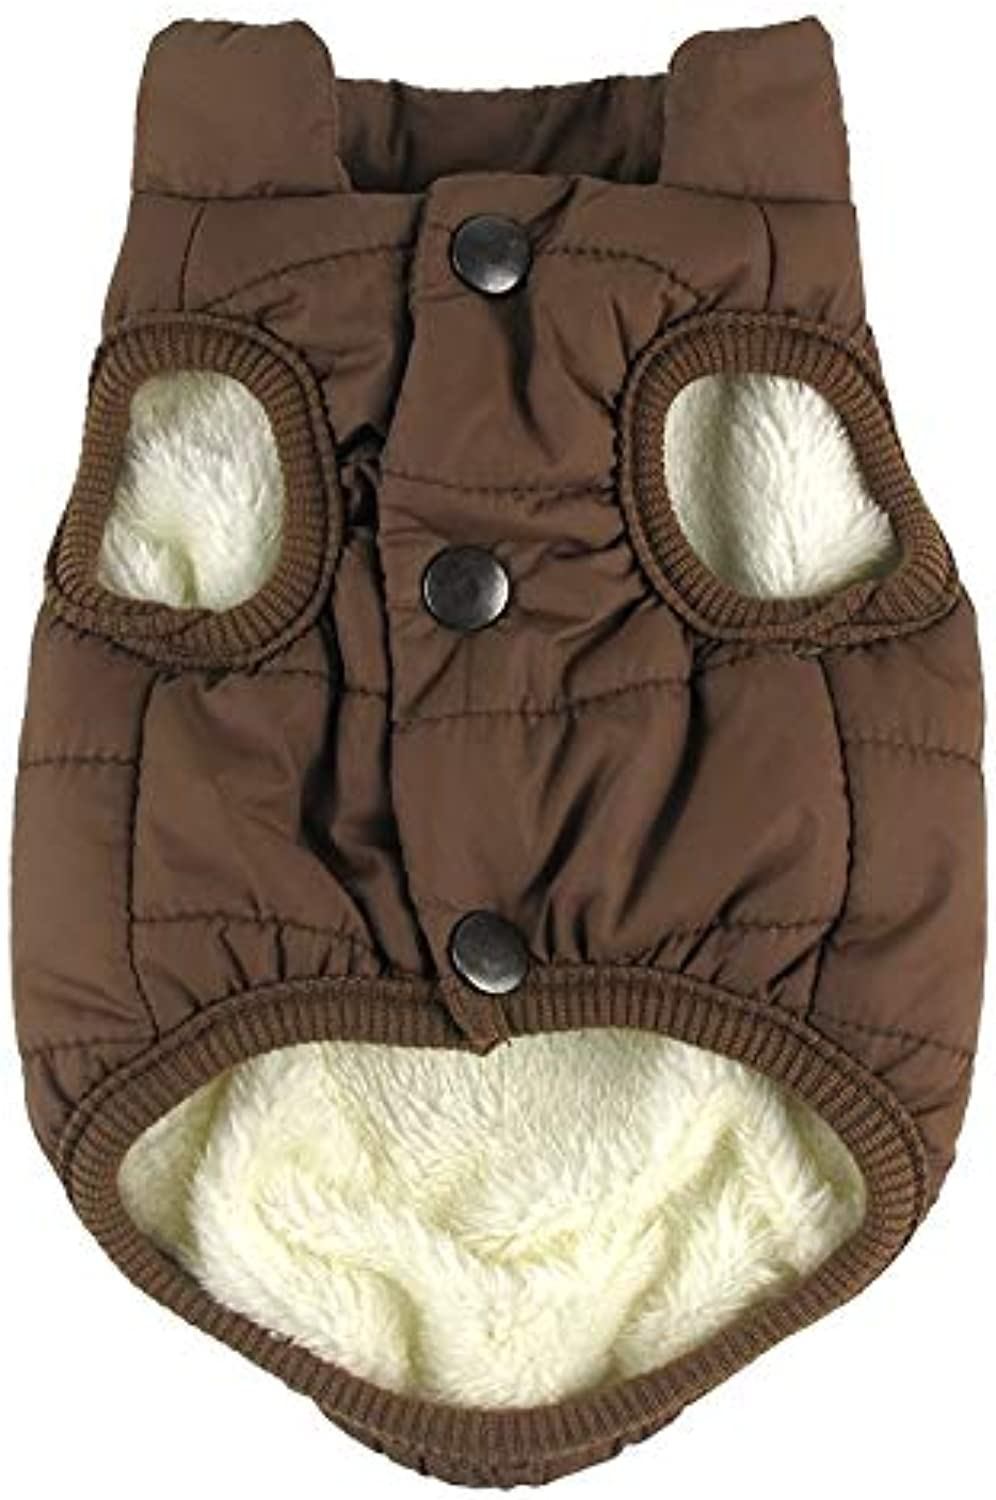 Pet Supplies hyx Winter Pet Coat Clothes for Dogs Winter Clothing Warm Dog Clothes, Size XL (color   Coffee)